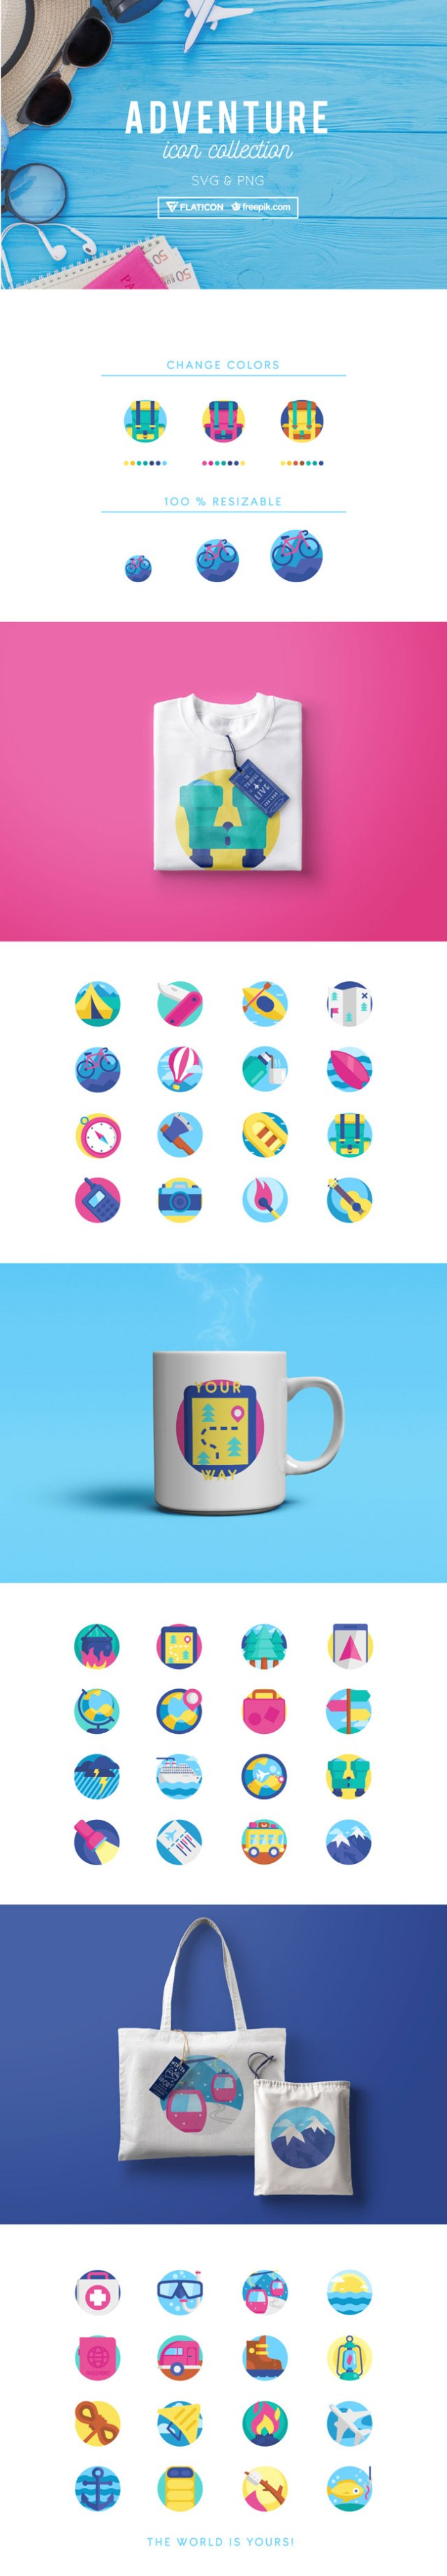 Adventure Icons Collection